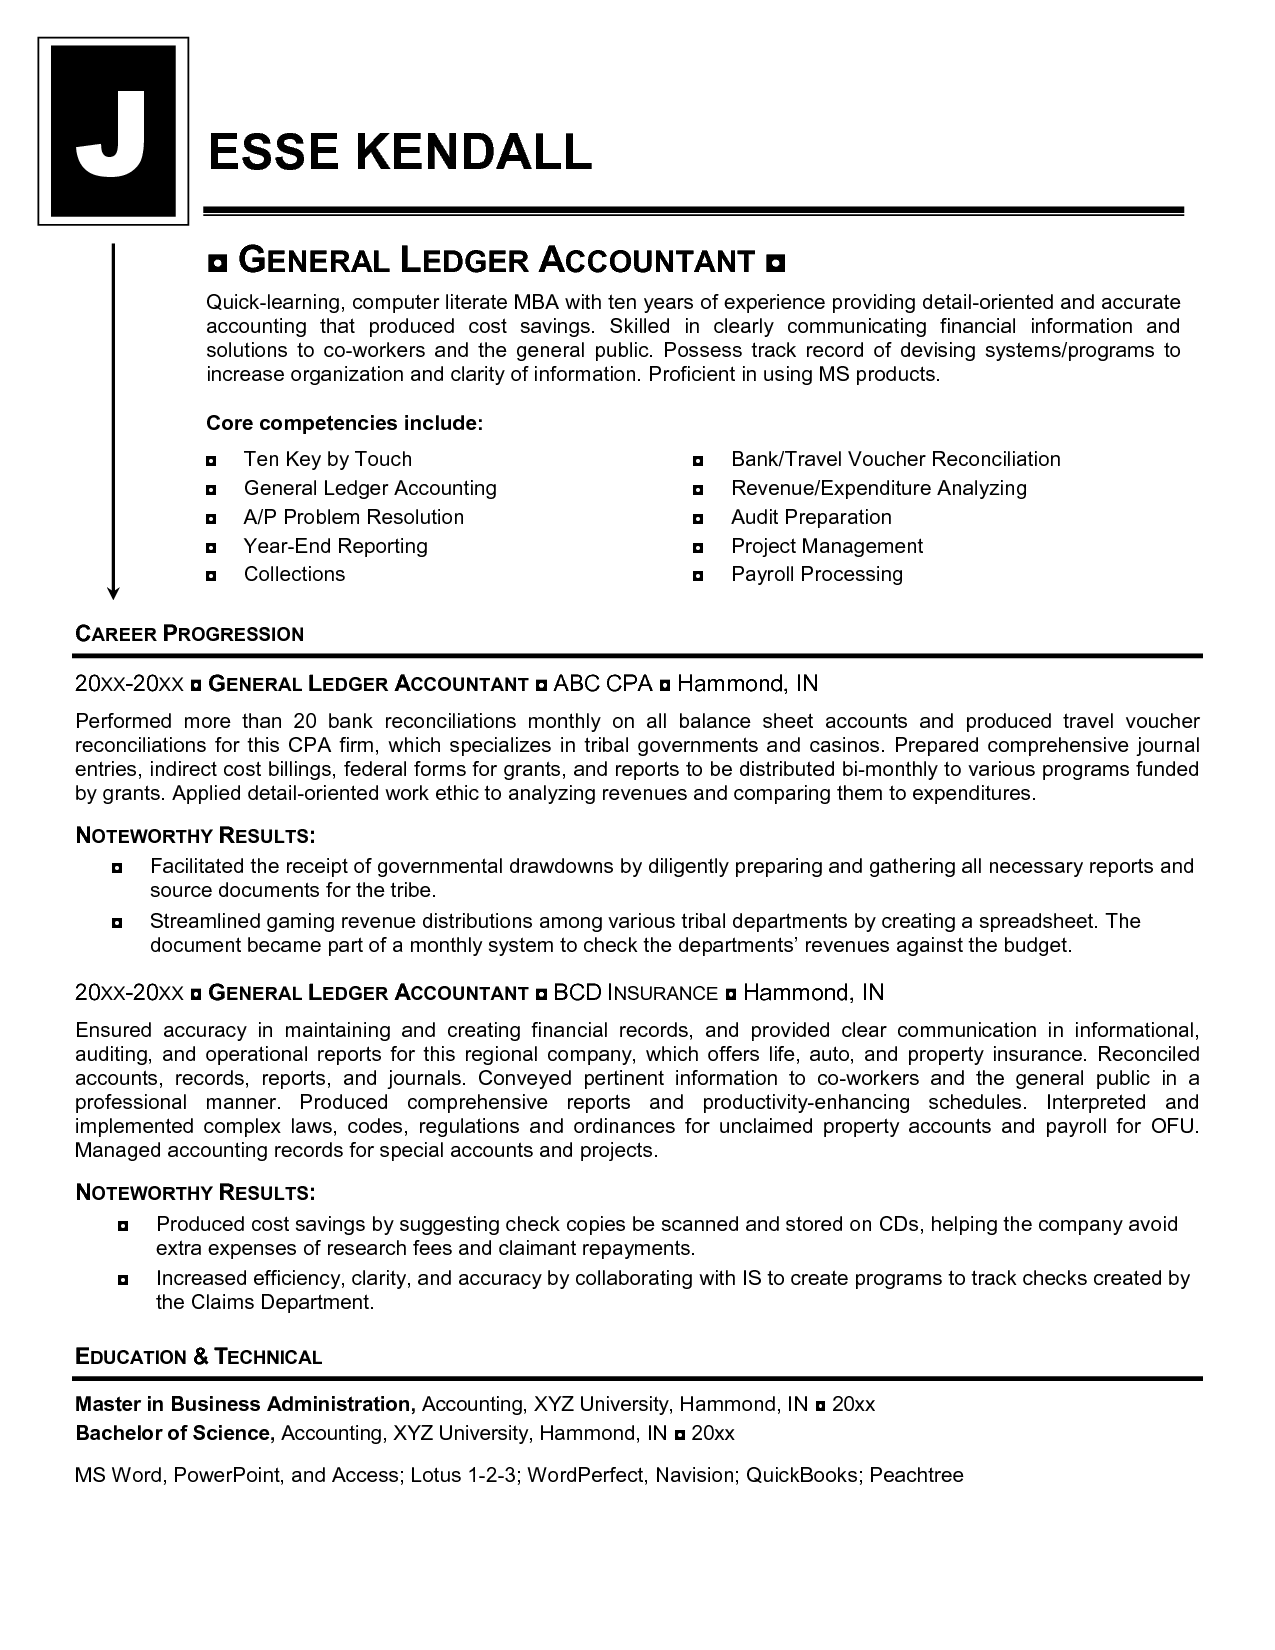 Senior Accountant Resume General Ledger Accountant Resume Mike 39s Blog